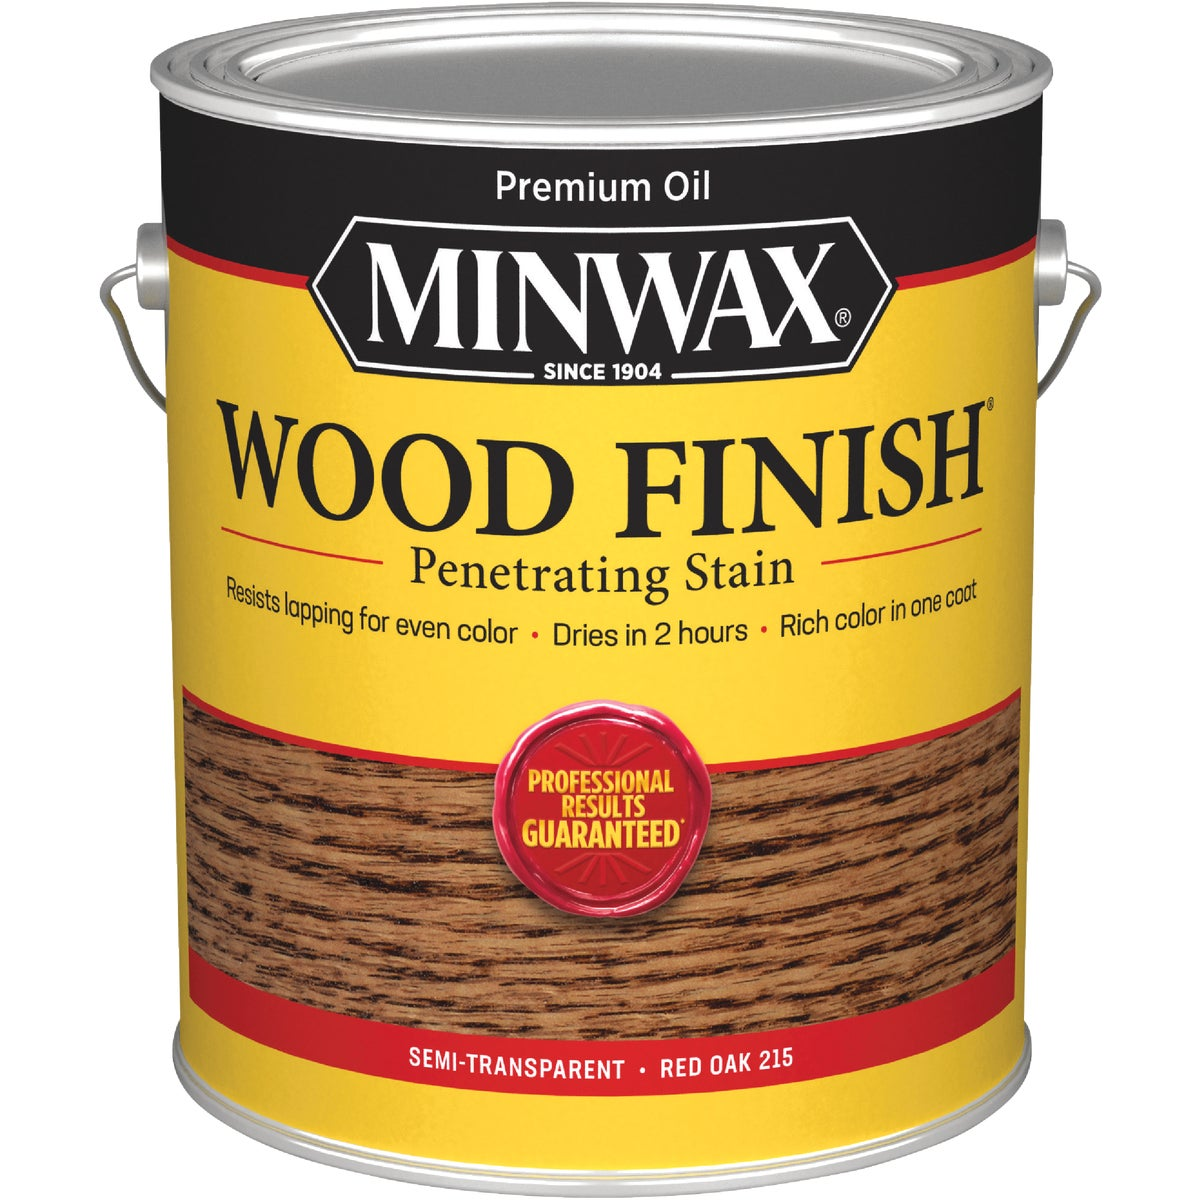 RED OAK WOOD STAIN - 71040 by Minwax Company